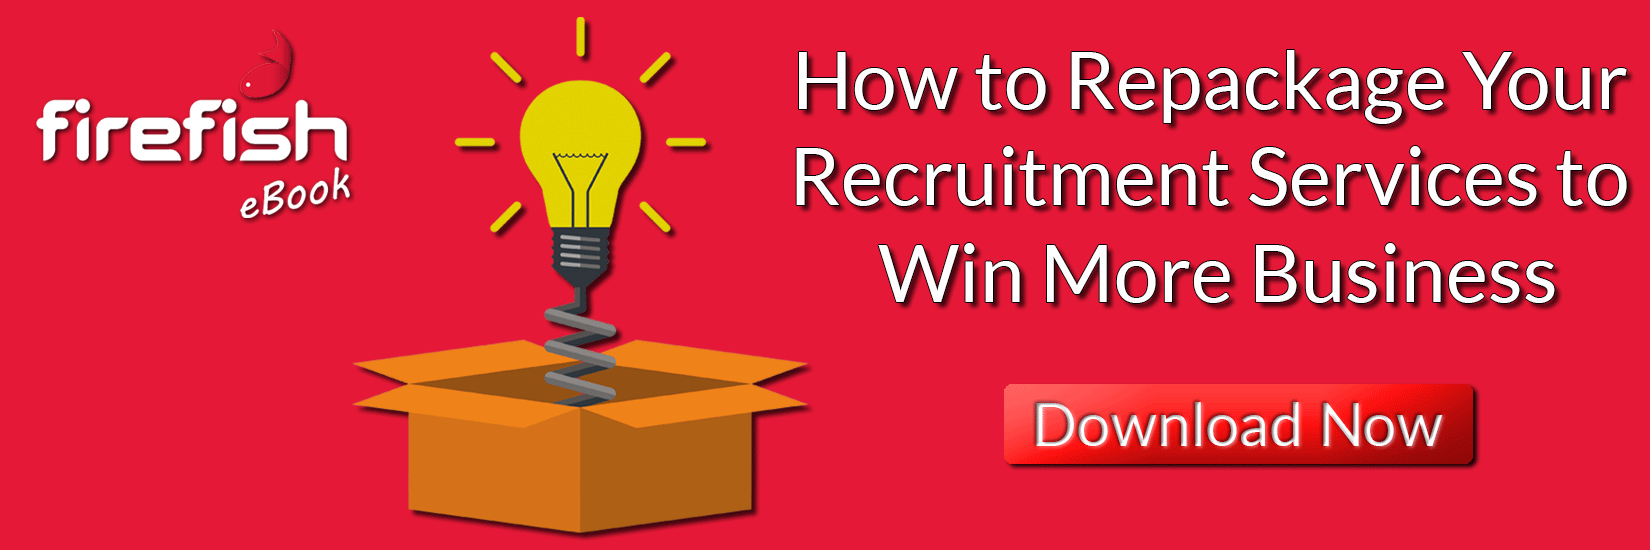 How to repackage your recruitment services button